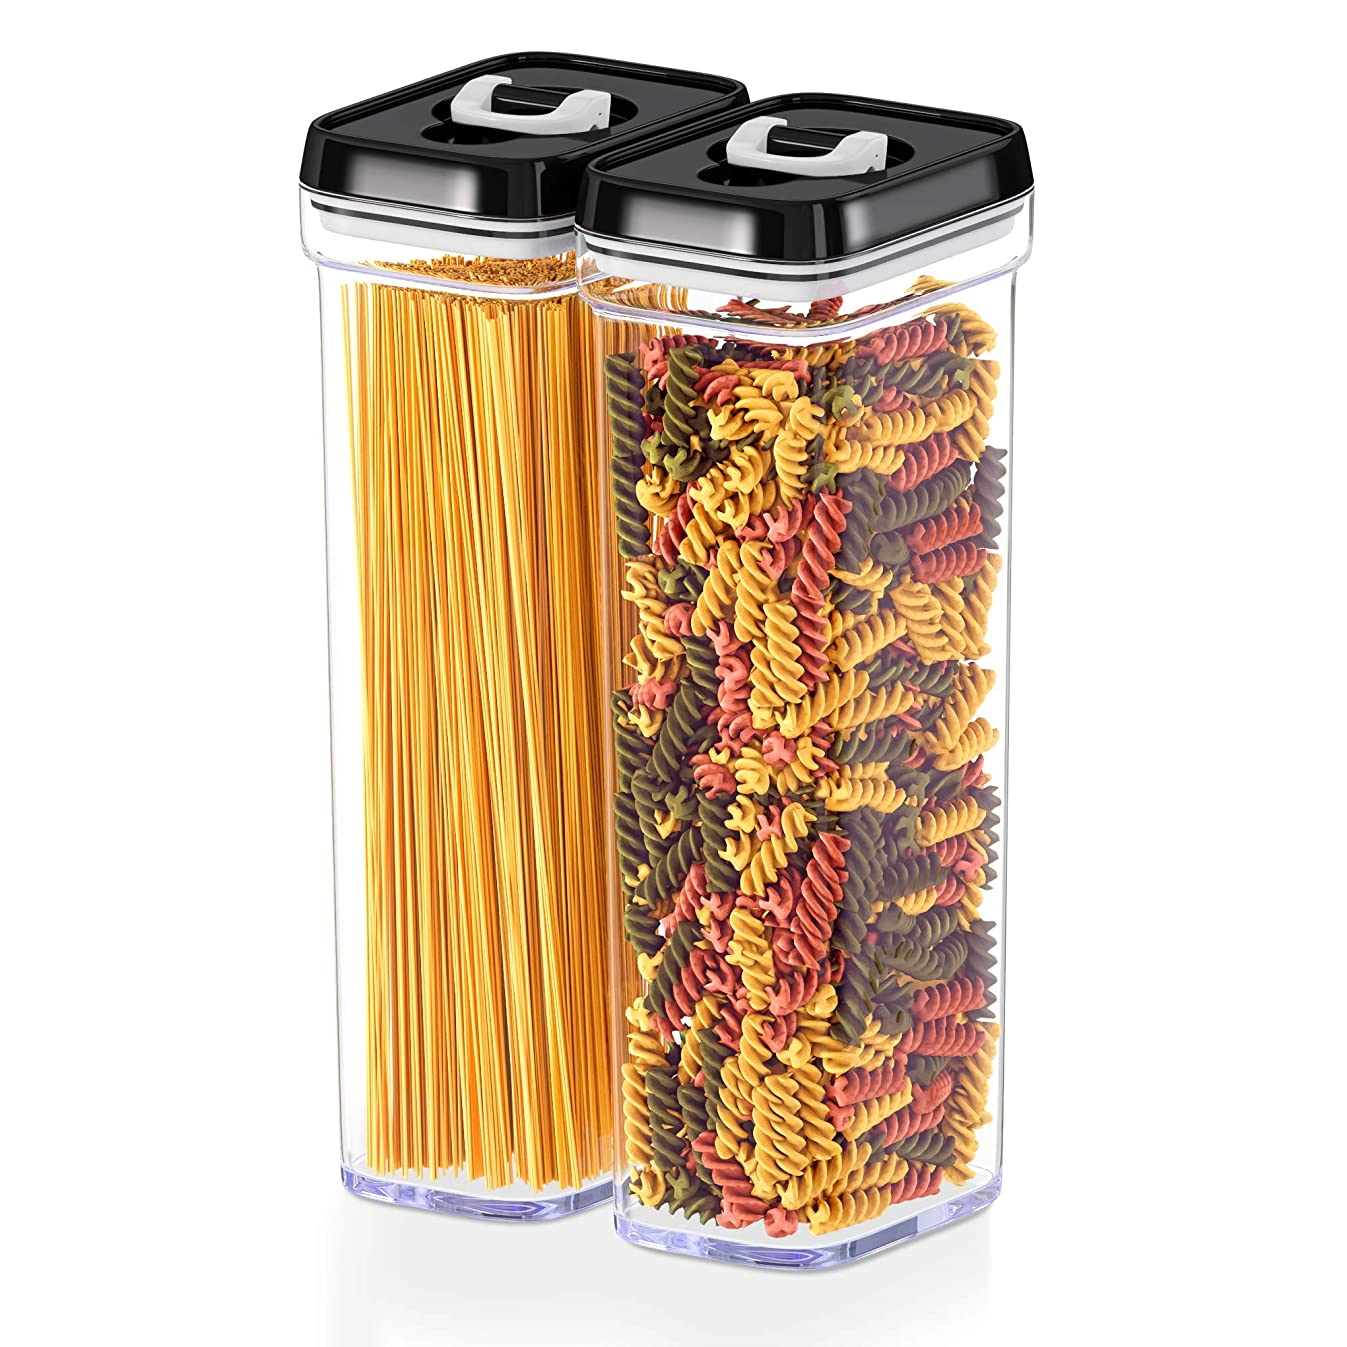 DW?LLZA KITCHEN Airtight Food Storage Containers with Lids – Same Size 2 Piece Set - Tall Air Tight Pantry & Kitchen Clear Container for Spaghetti Noodle and Pasta - Keeps it Fresh & Dry